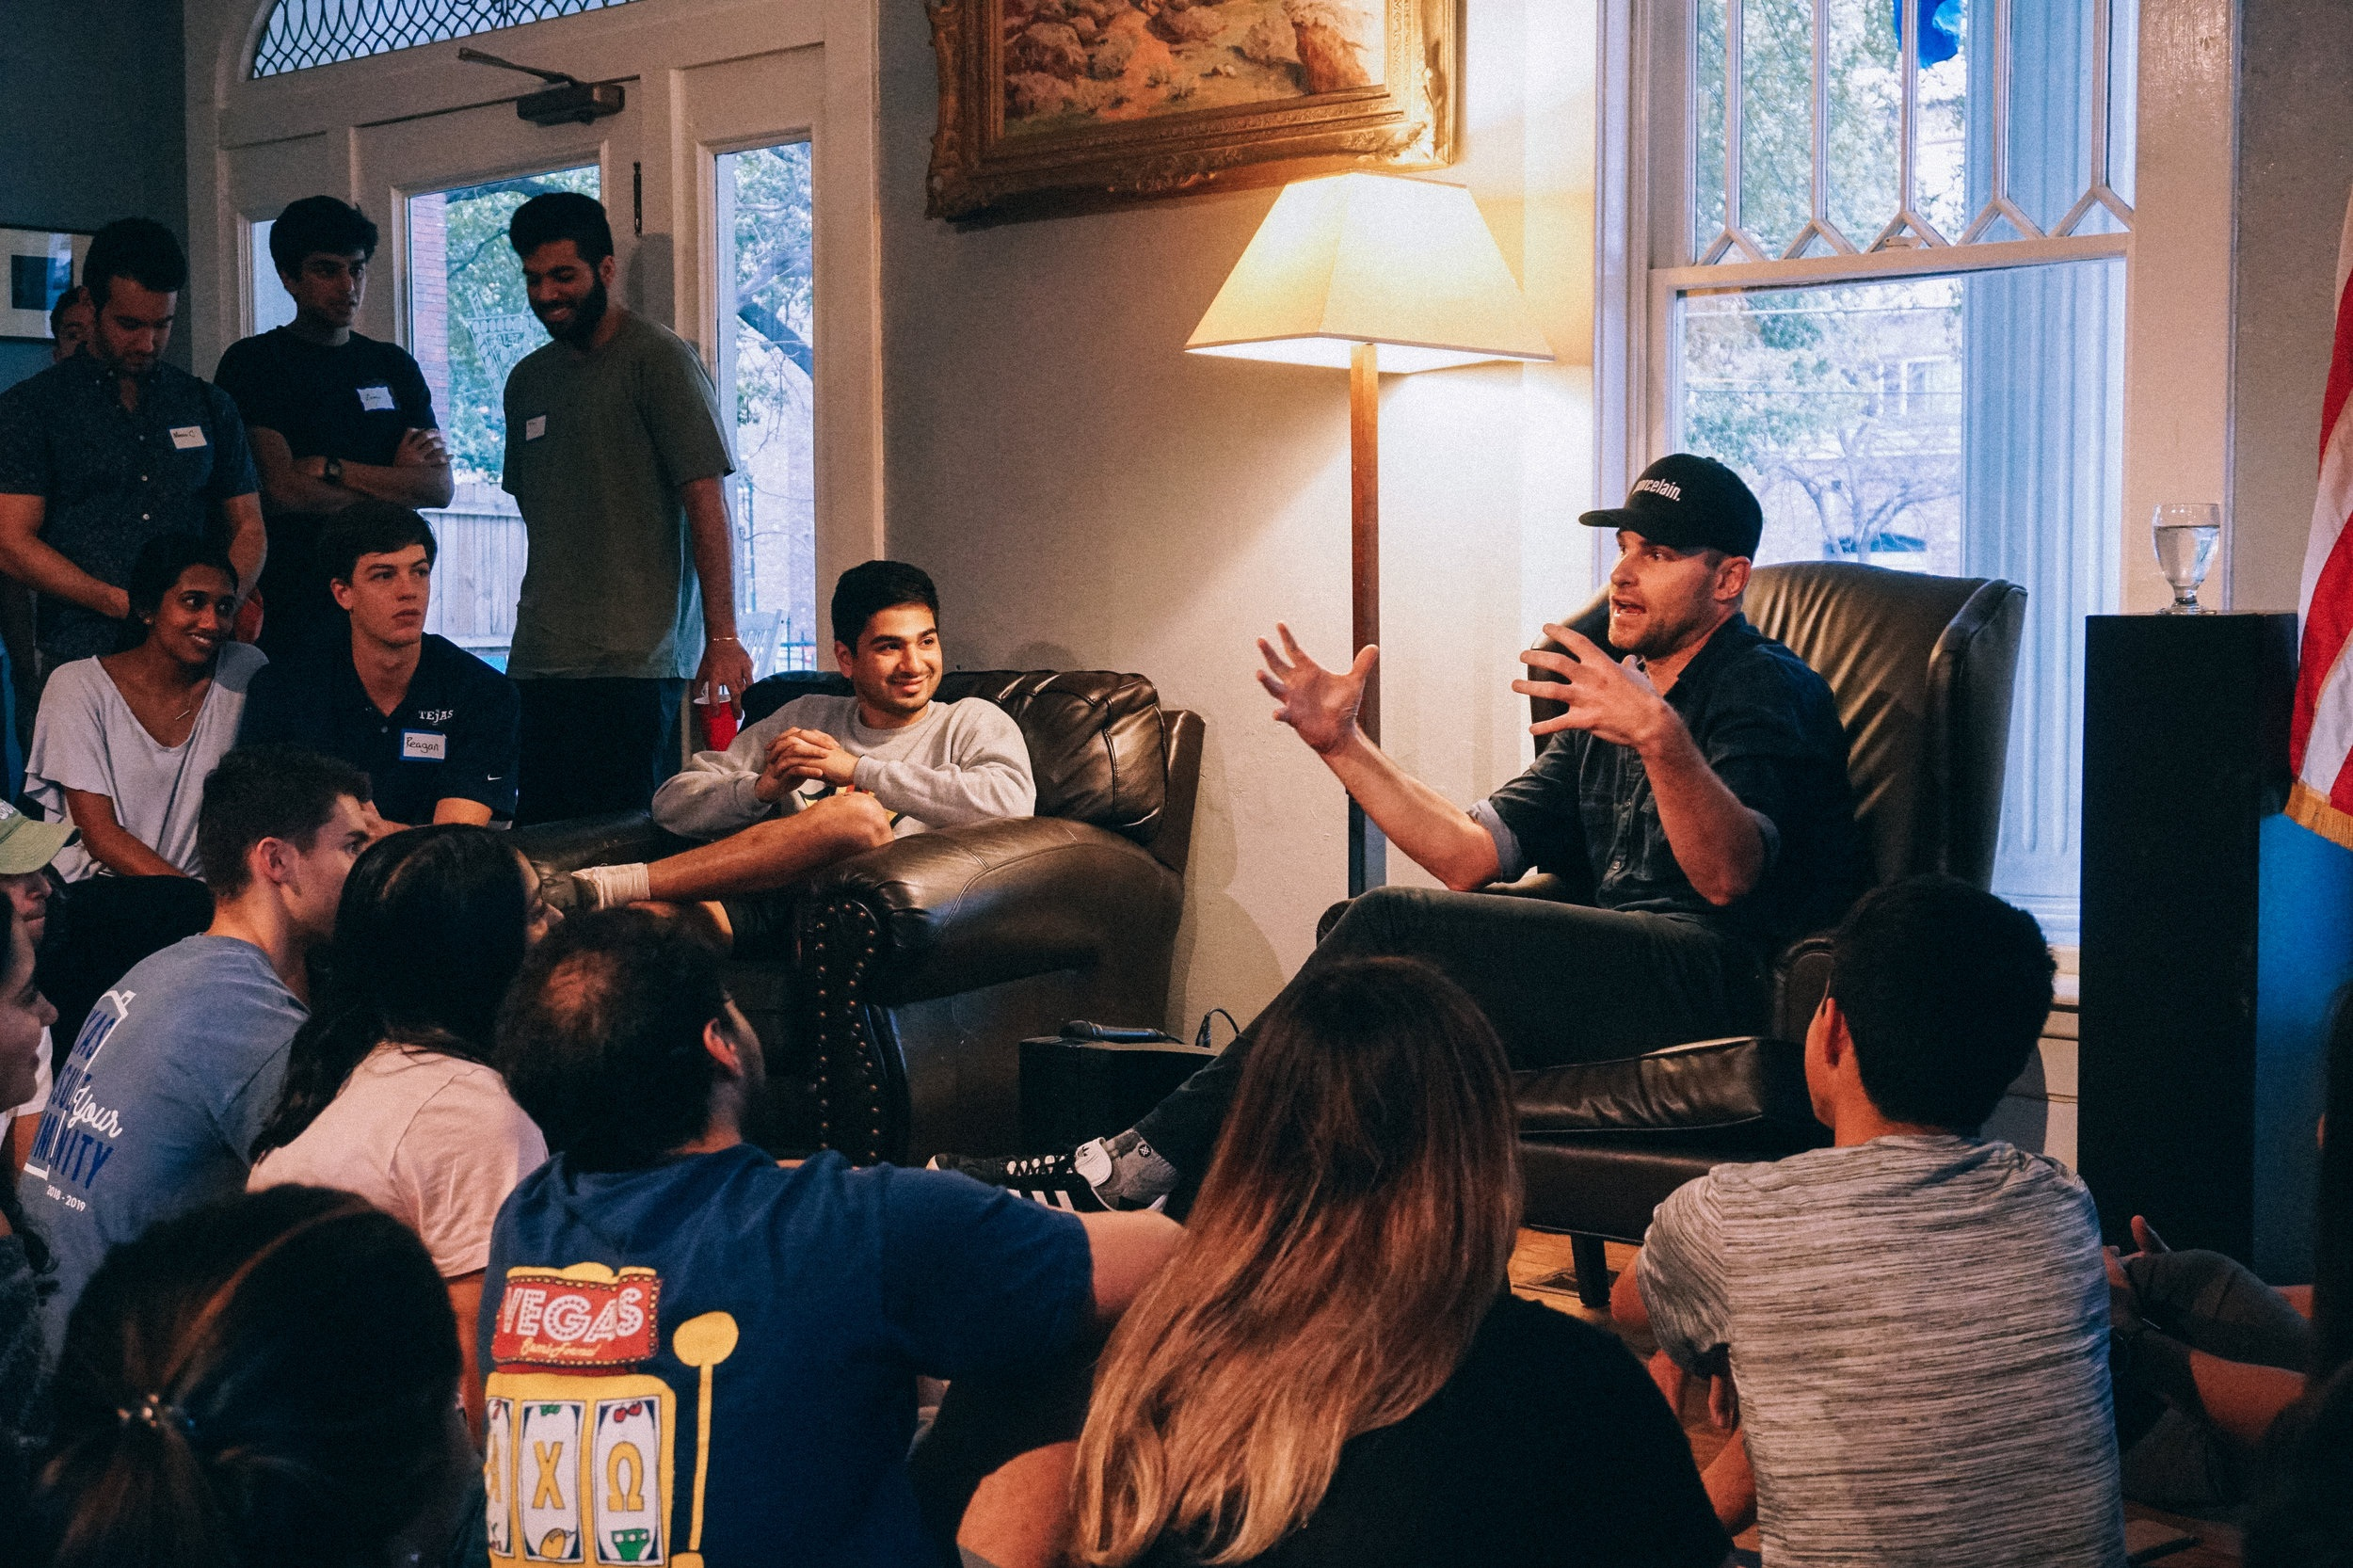 Tejas Coffees - The Tejas Club hosts coffees featuring influential speakers weekly on Thursday evenings at the Tejas House (2600 Rio Grande Street). Past speakers include Mack Brown, Andy Roddick, Beto O'Rourke, and Matthew McConaughey.